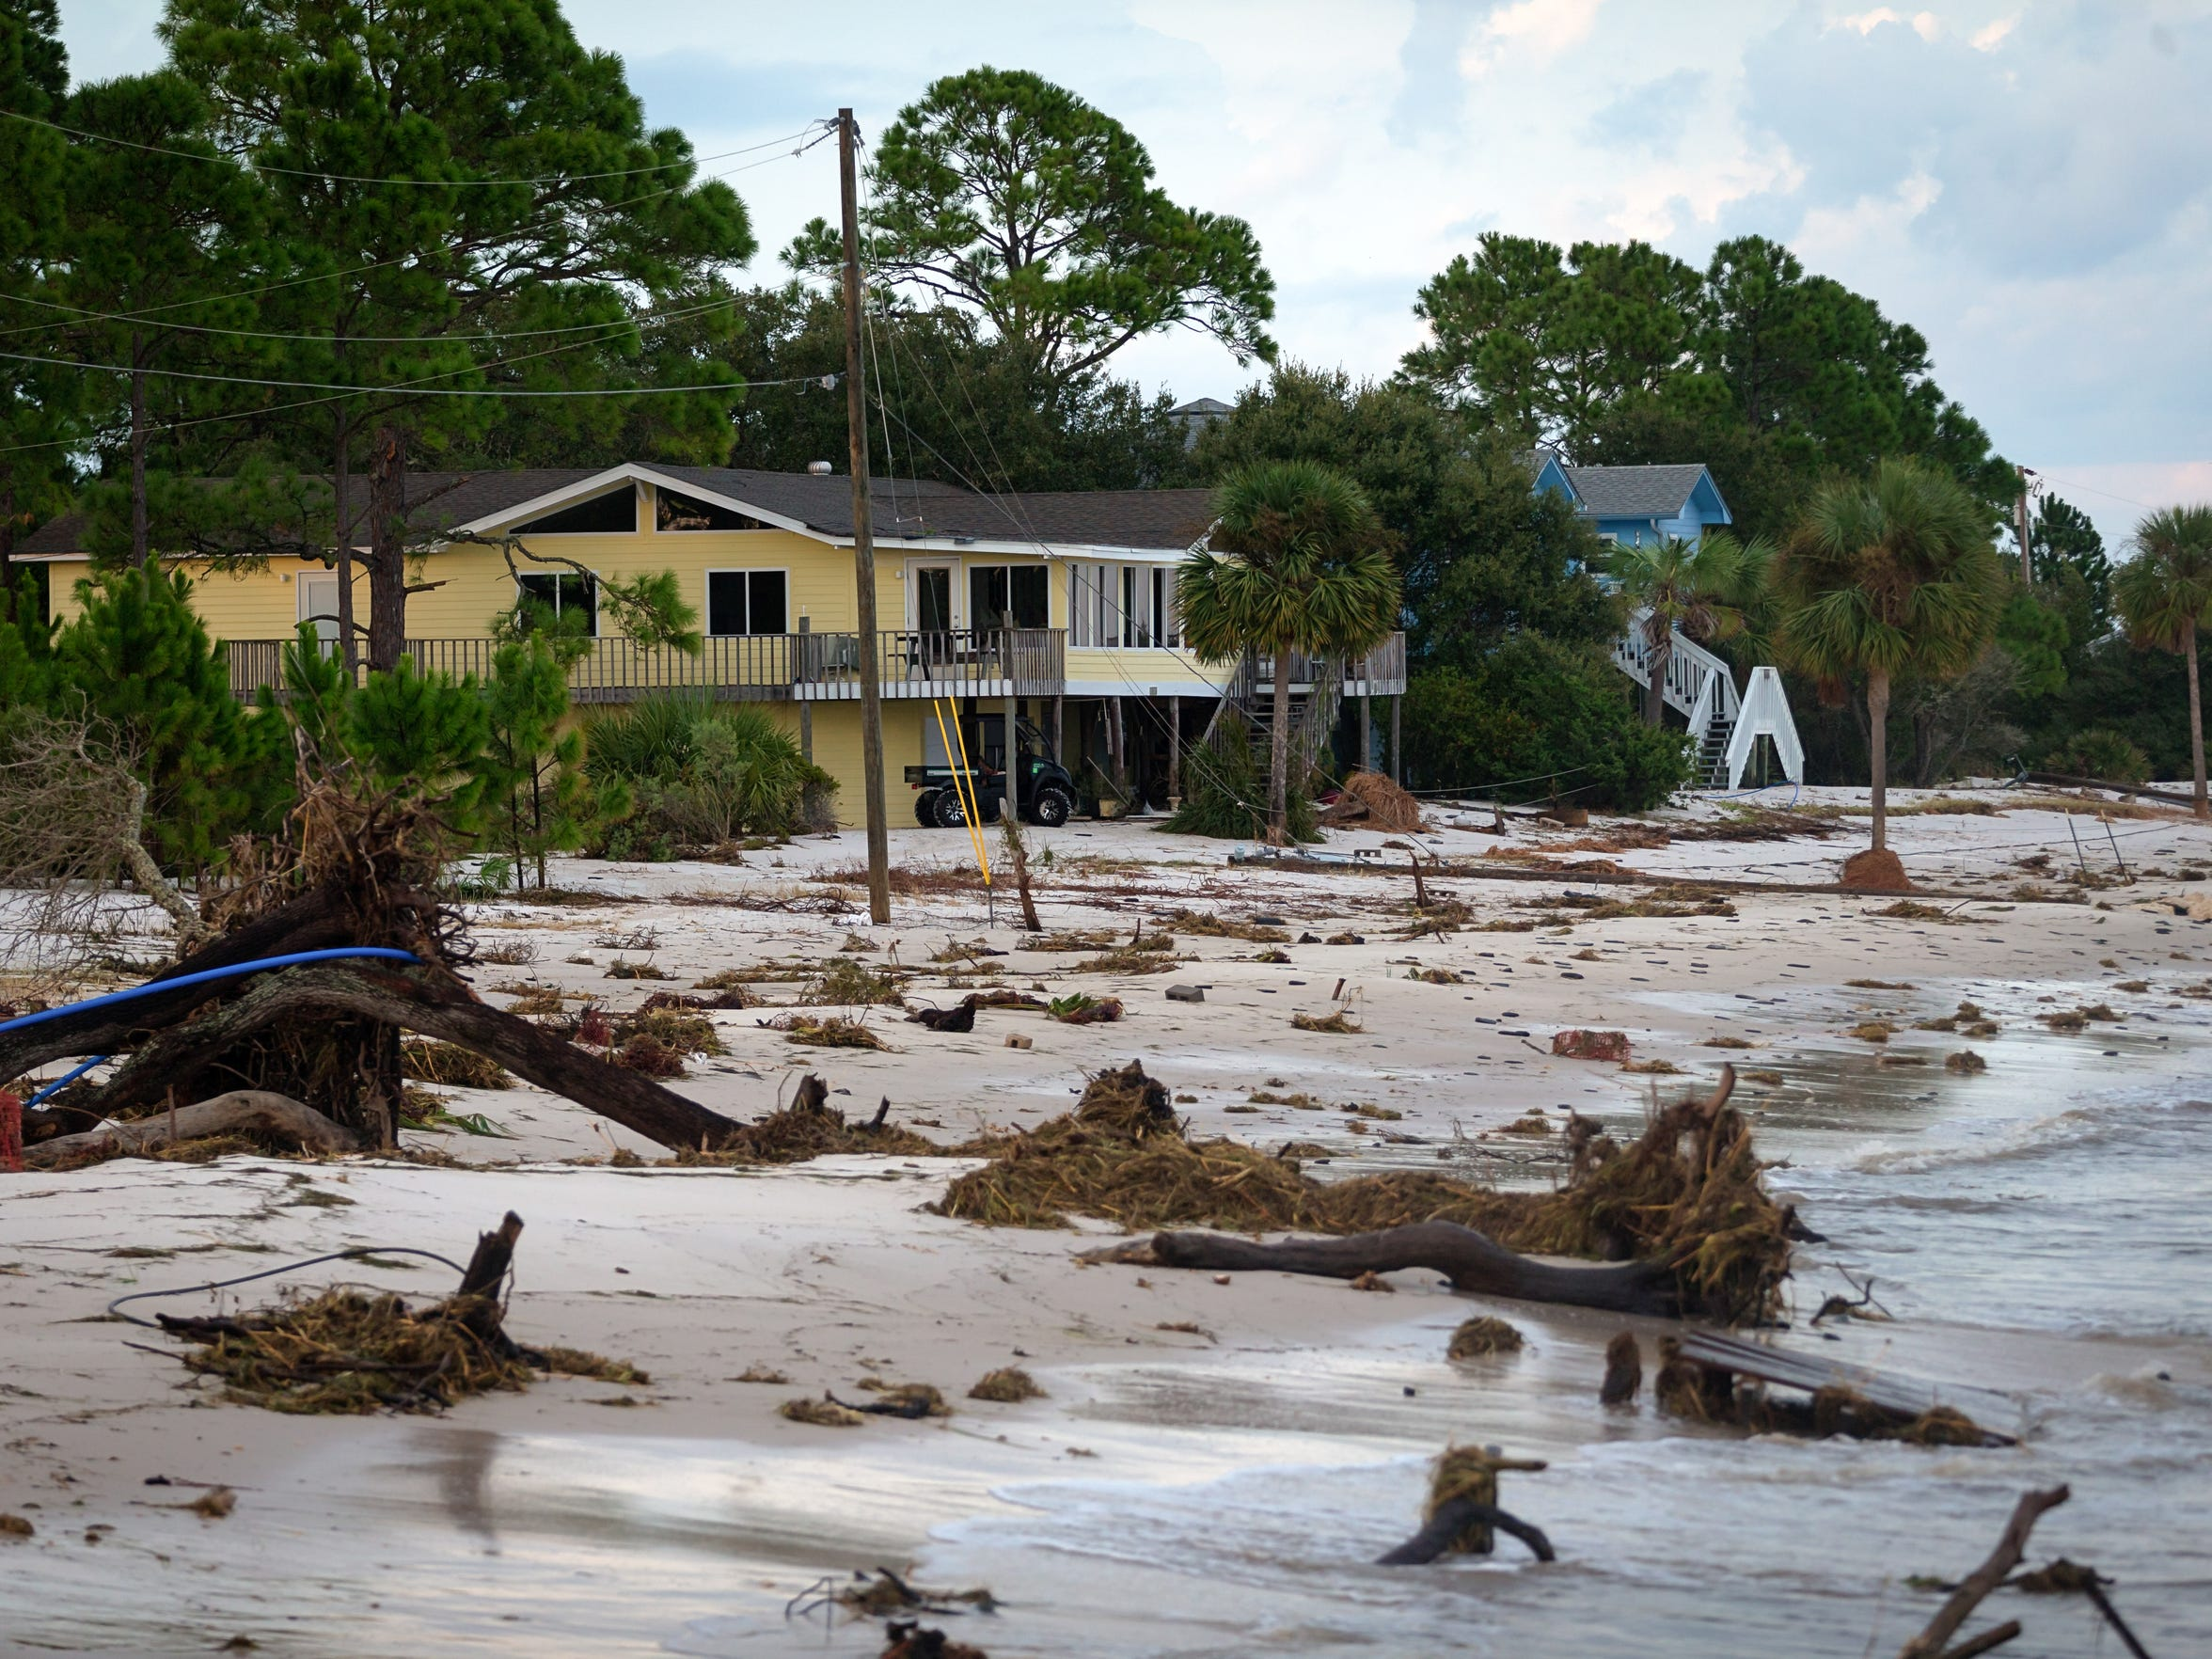 A day after Hurricane Hermine made landfall nearby,